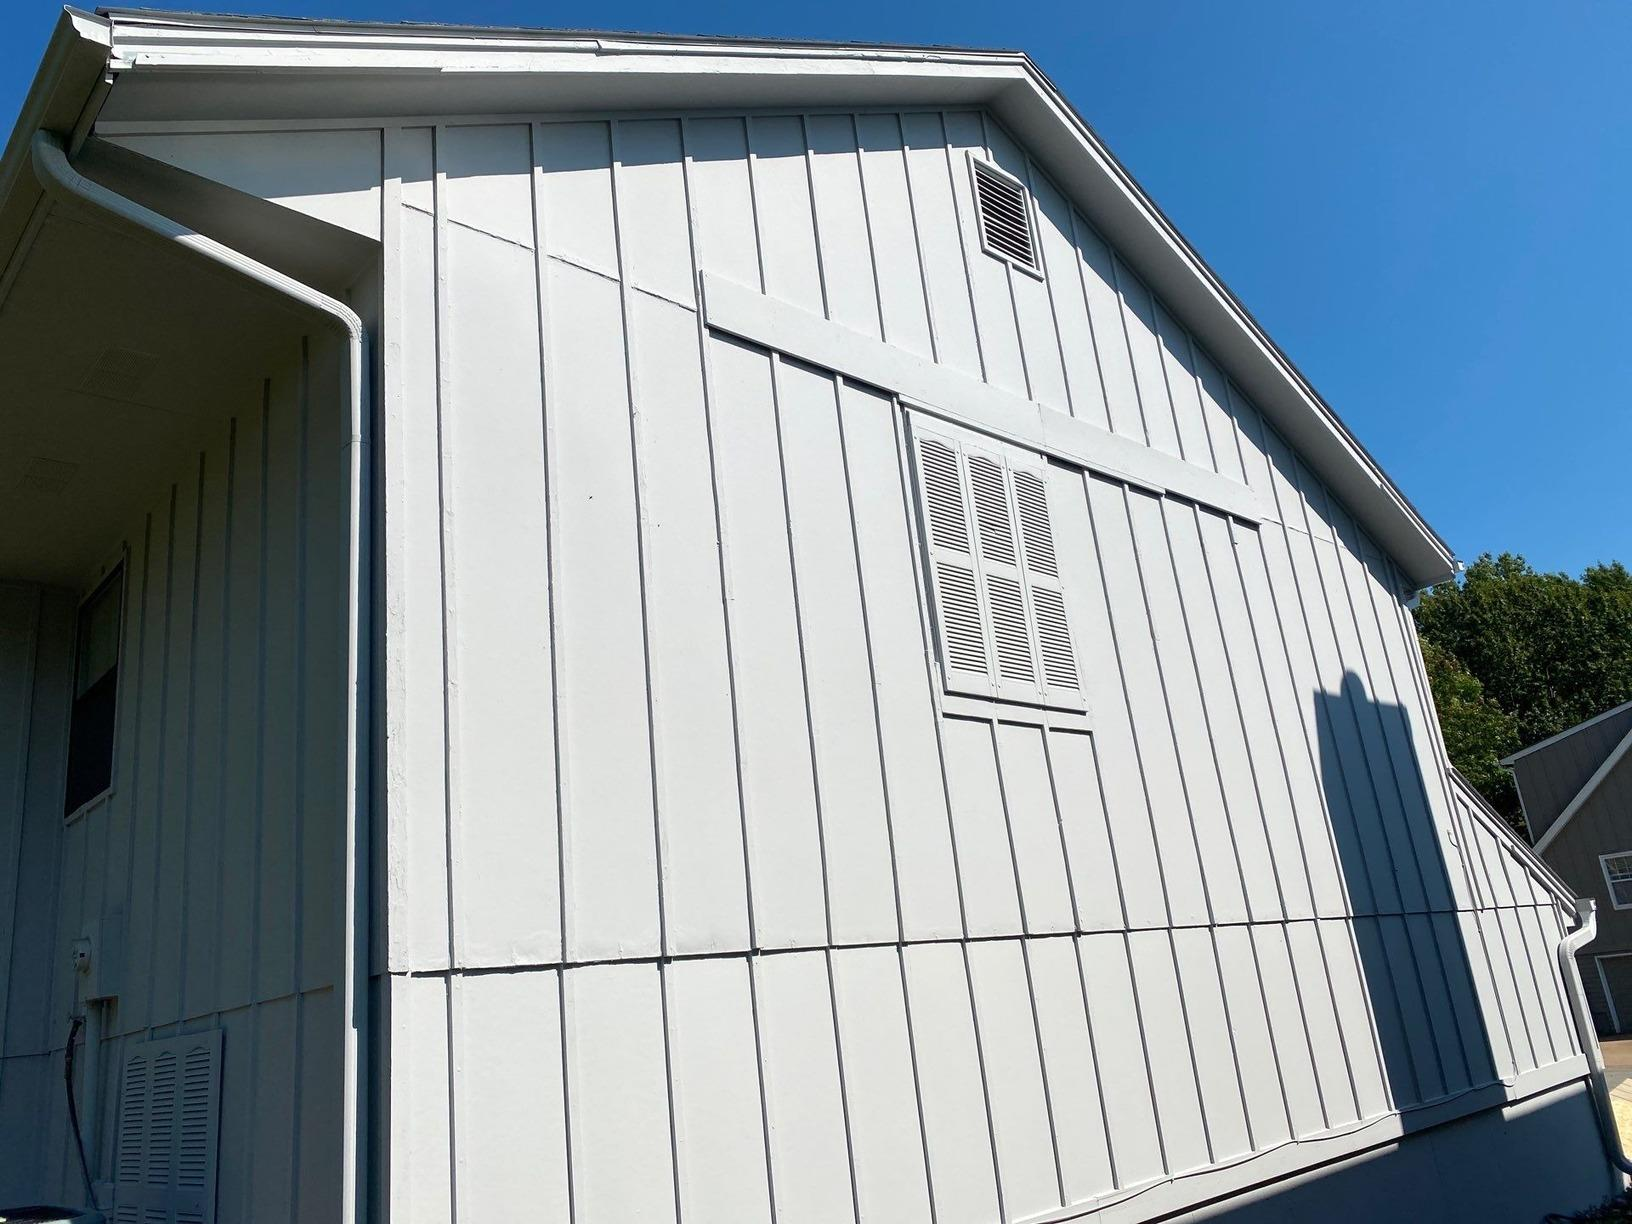 Exterior Paint and Siding Repair on Grandview, MO Home - After Photo